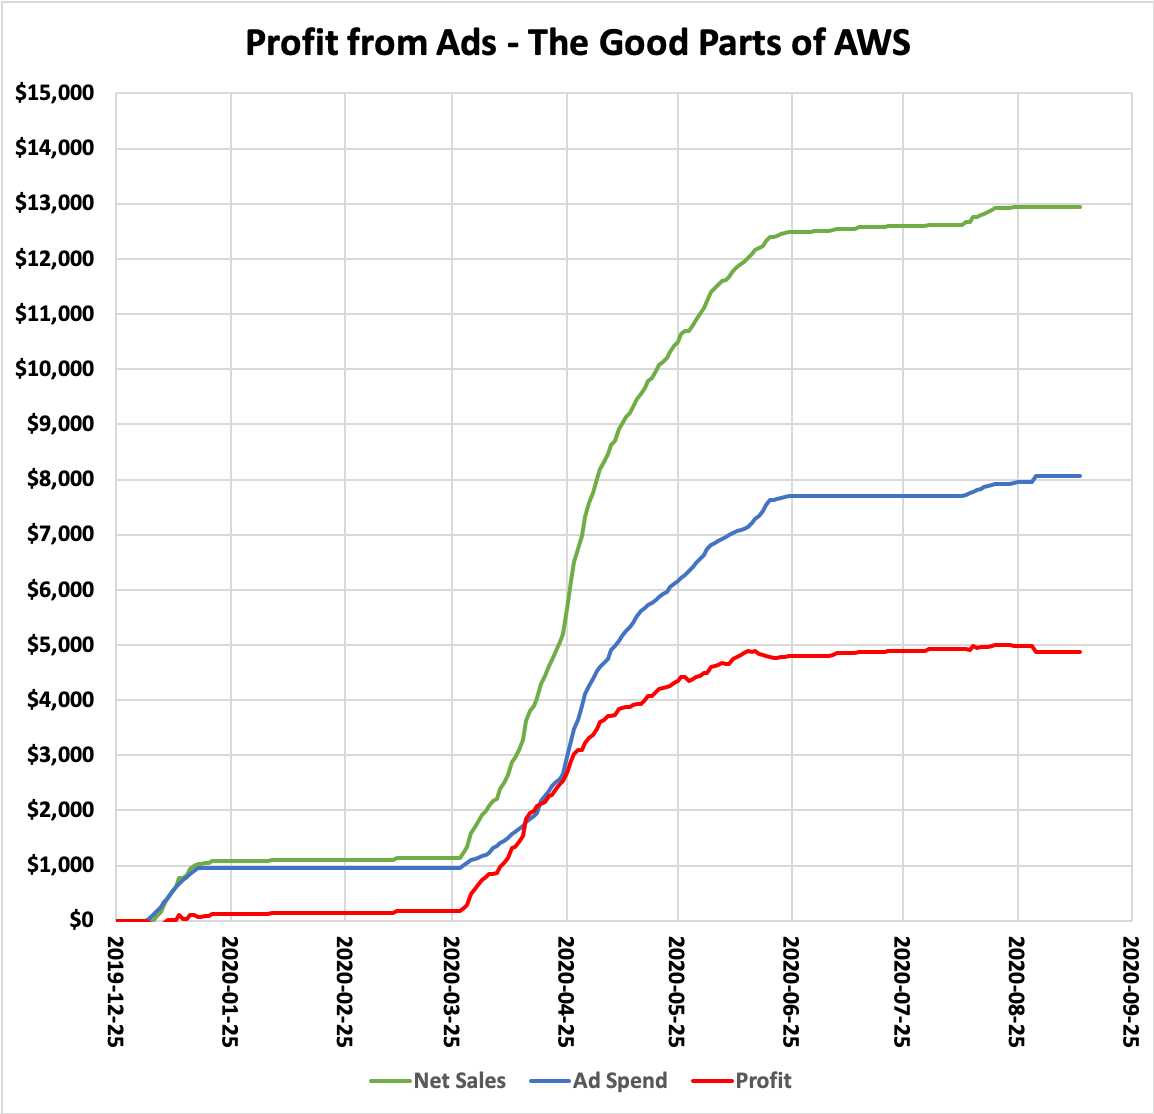 Profit from Ads - The Good Parts of AWS